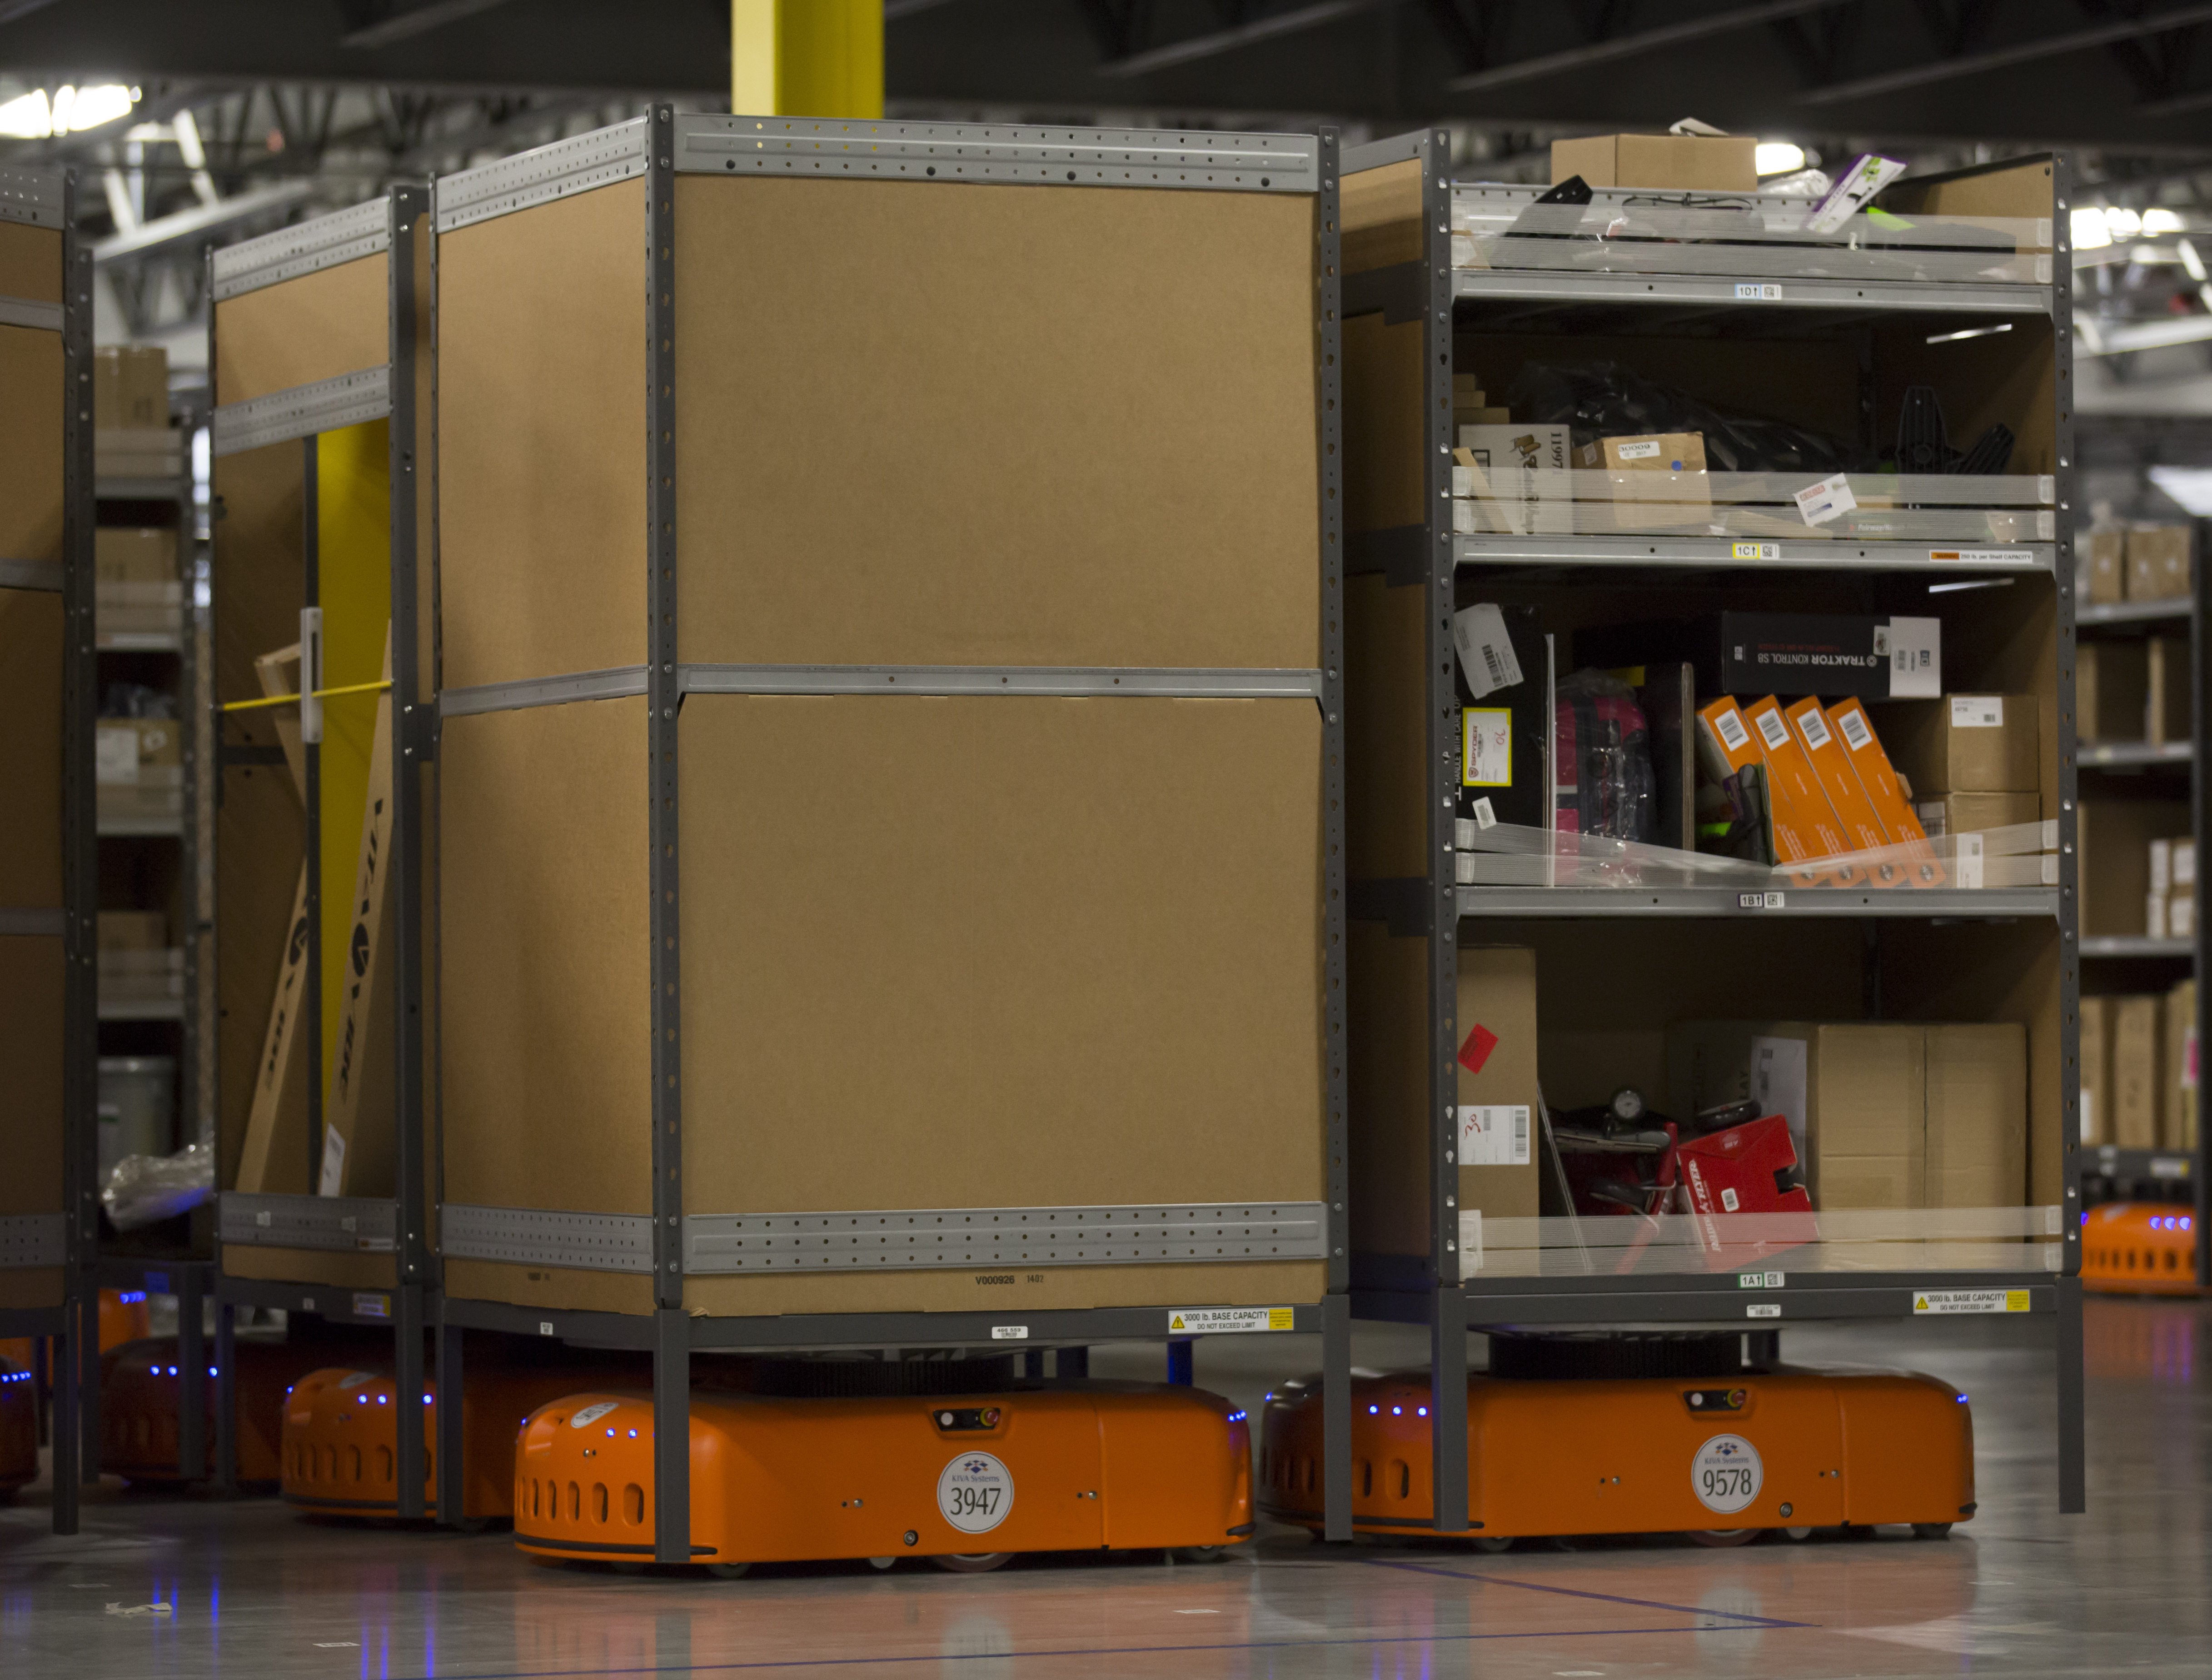 Amazon Kiva robots, which help fill orders by bringing shelves of merchandise to Amazon Associates, navigate an Amazon Fulfillment Center on February 13, 2015 in DuPont, Washington.